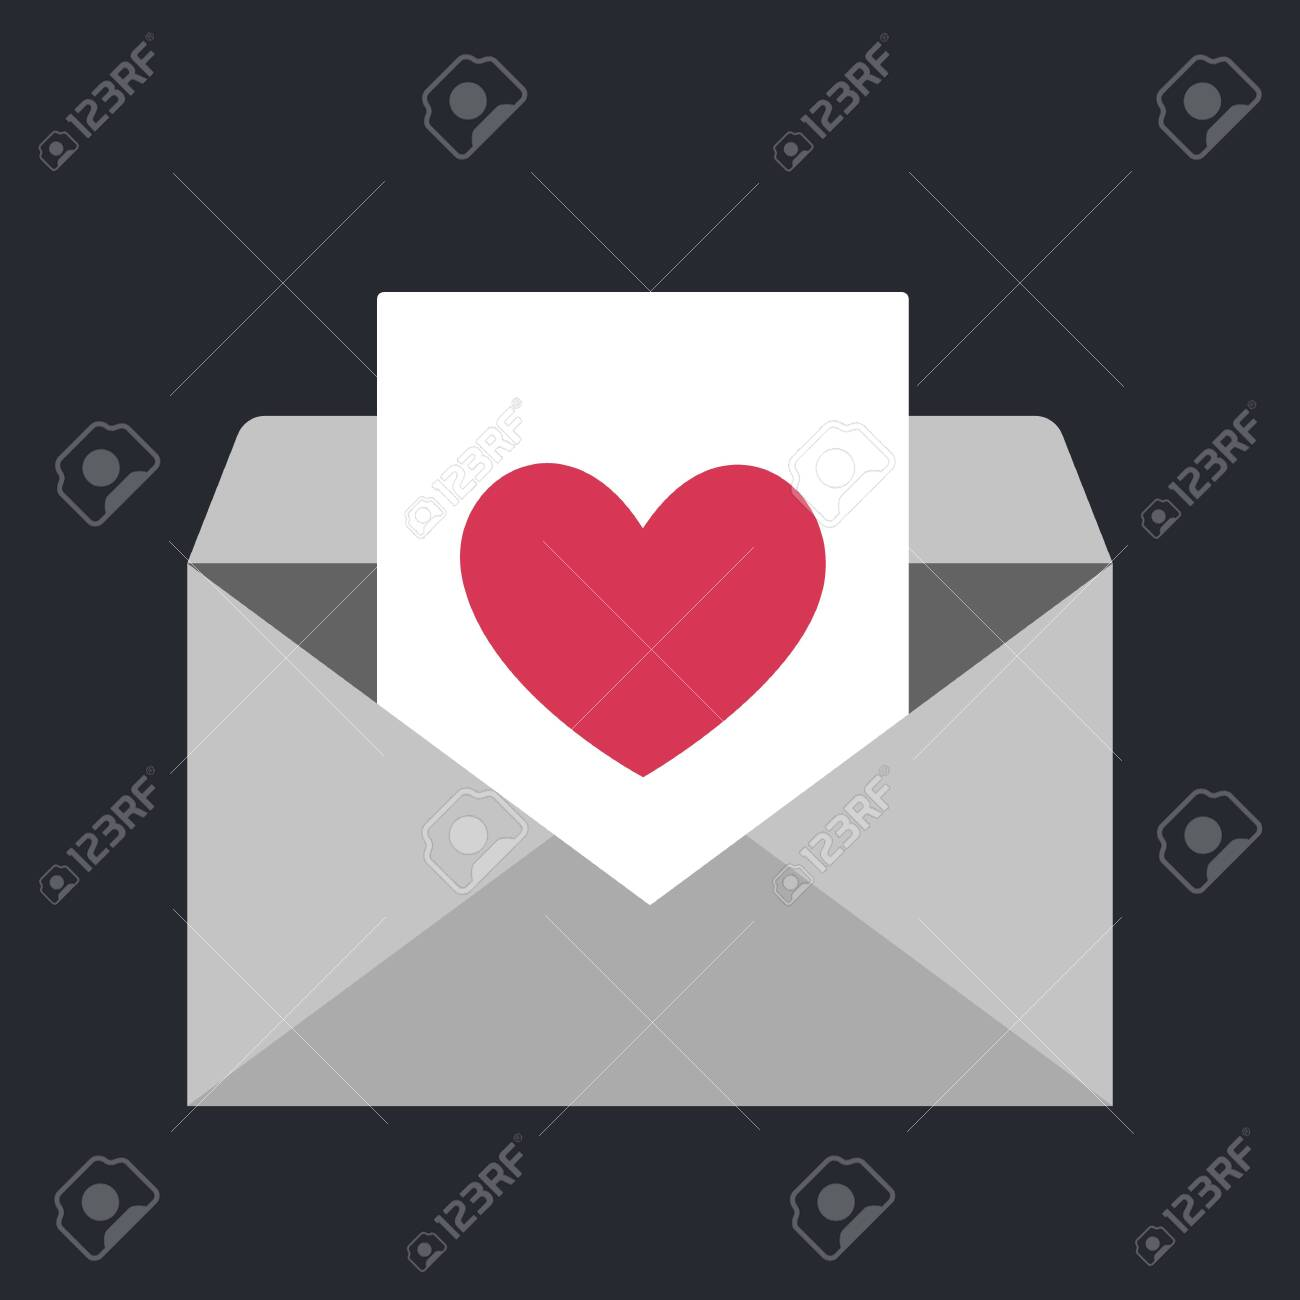 Enveope icon with heart symbol. Idea of love message and valentine day. Romantic email. Isolated vector illustration in flat style - 131565466